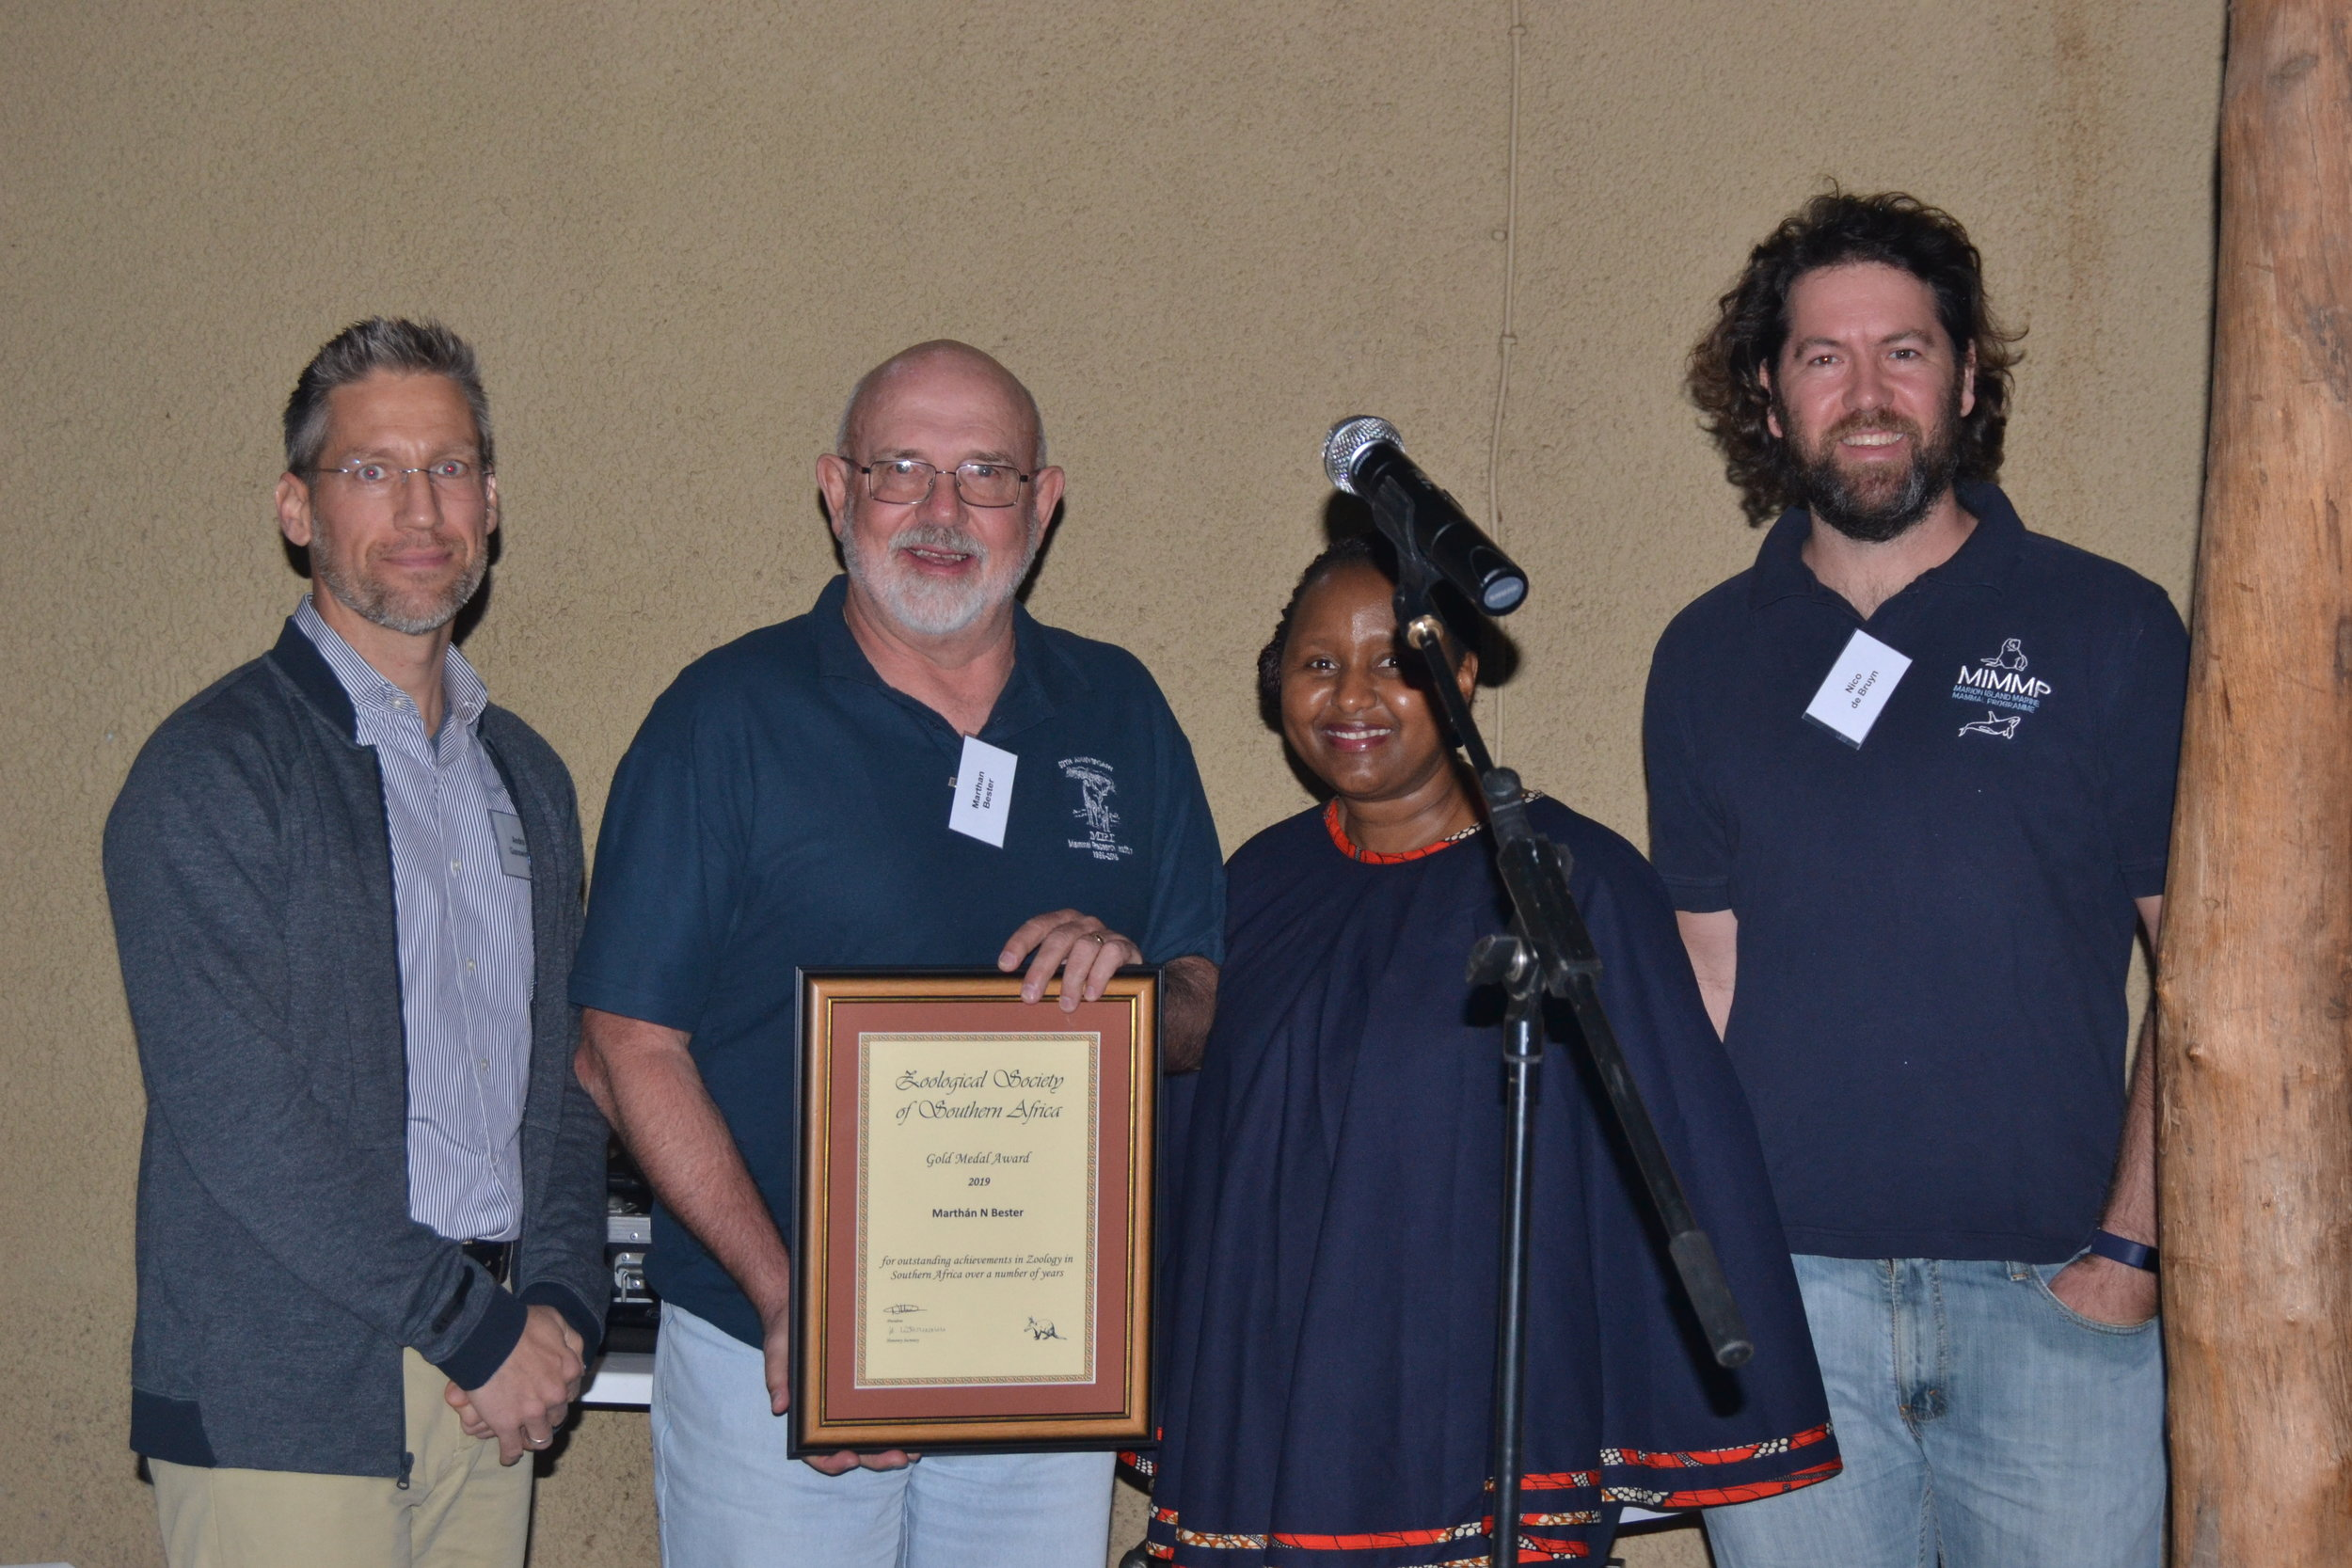 Prof Marthan Bester (2nd from the left) was awarded the ZSSA Gold Medal for his outstanding achievements in Zoology.